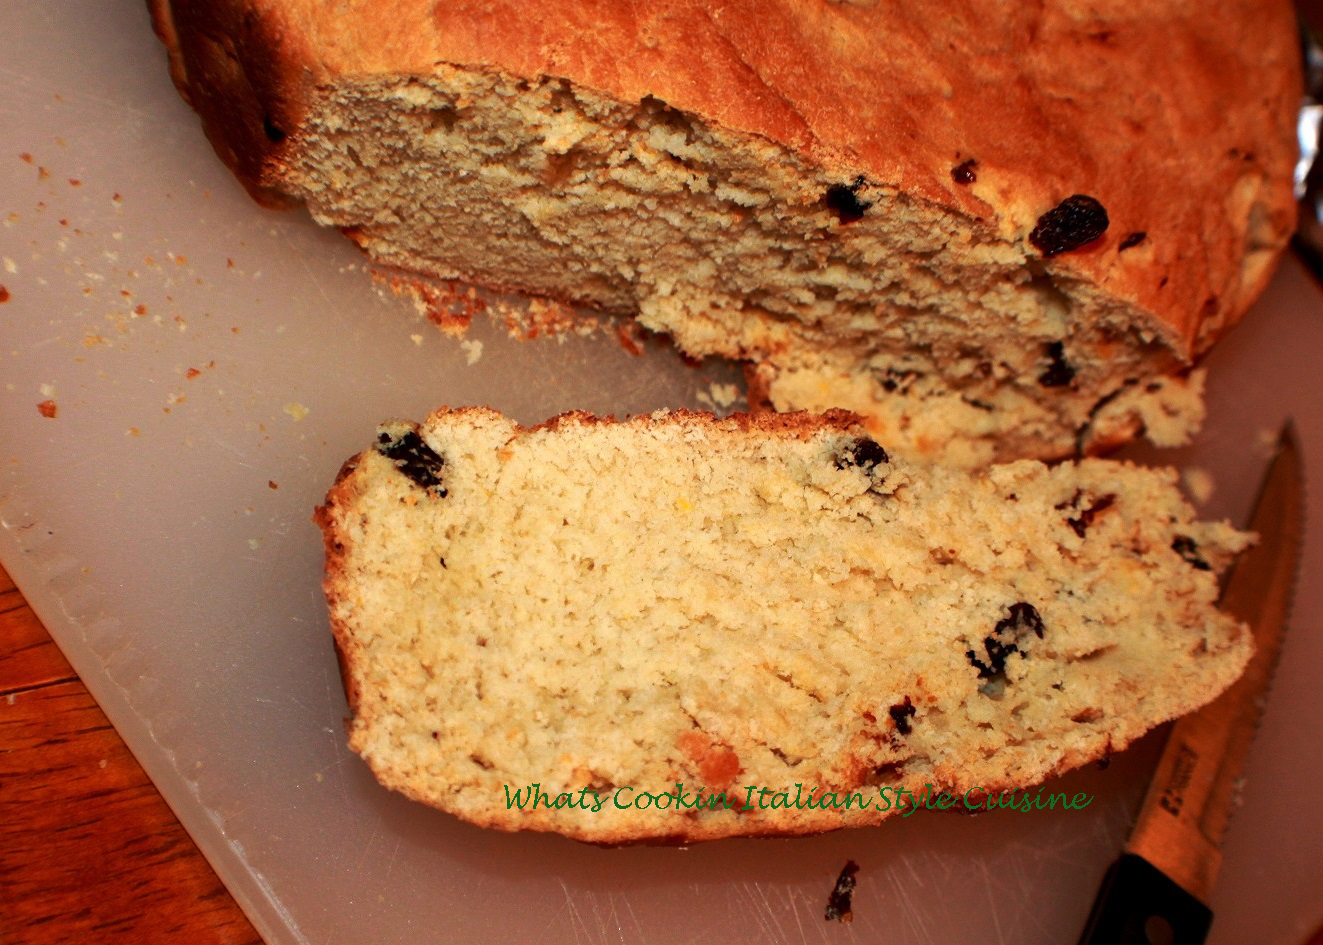 This is an Italian panettone bread made at Christmas with dark and golden raisins with Amaretto flavors